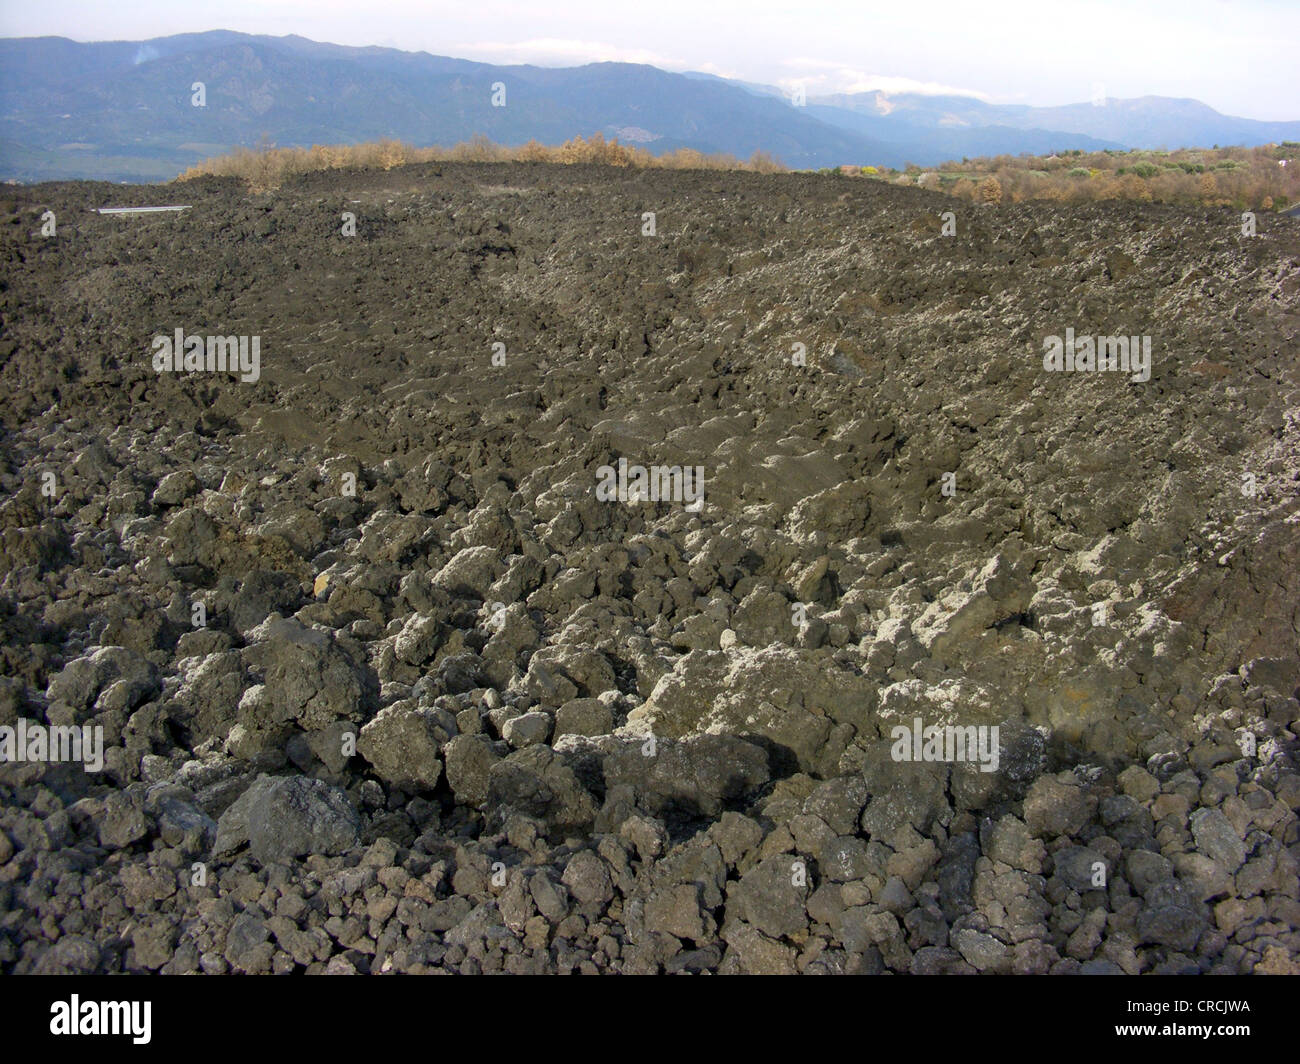 young lava field at the northern slope of Mount Etna, Italy, Sicilia - Stock Image